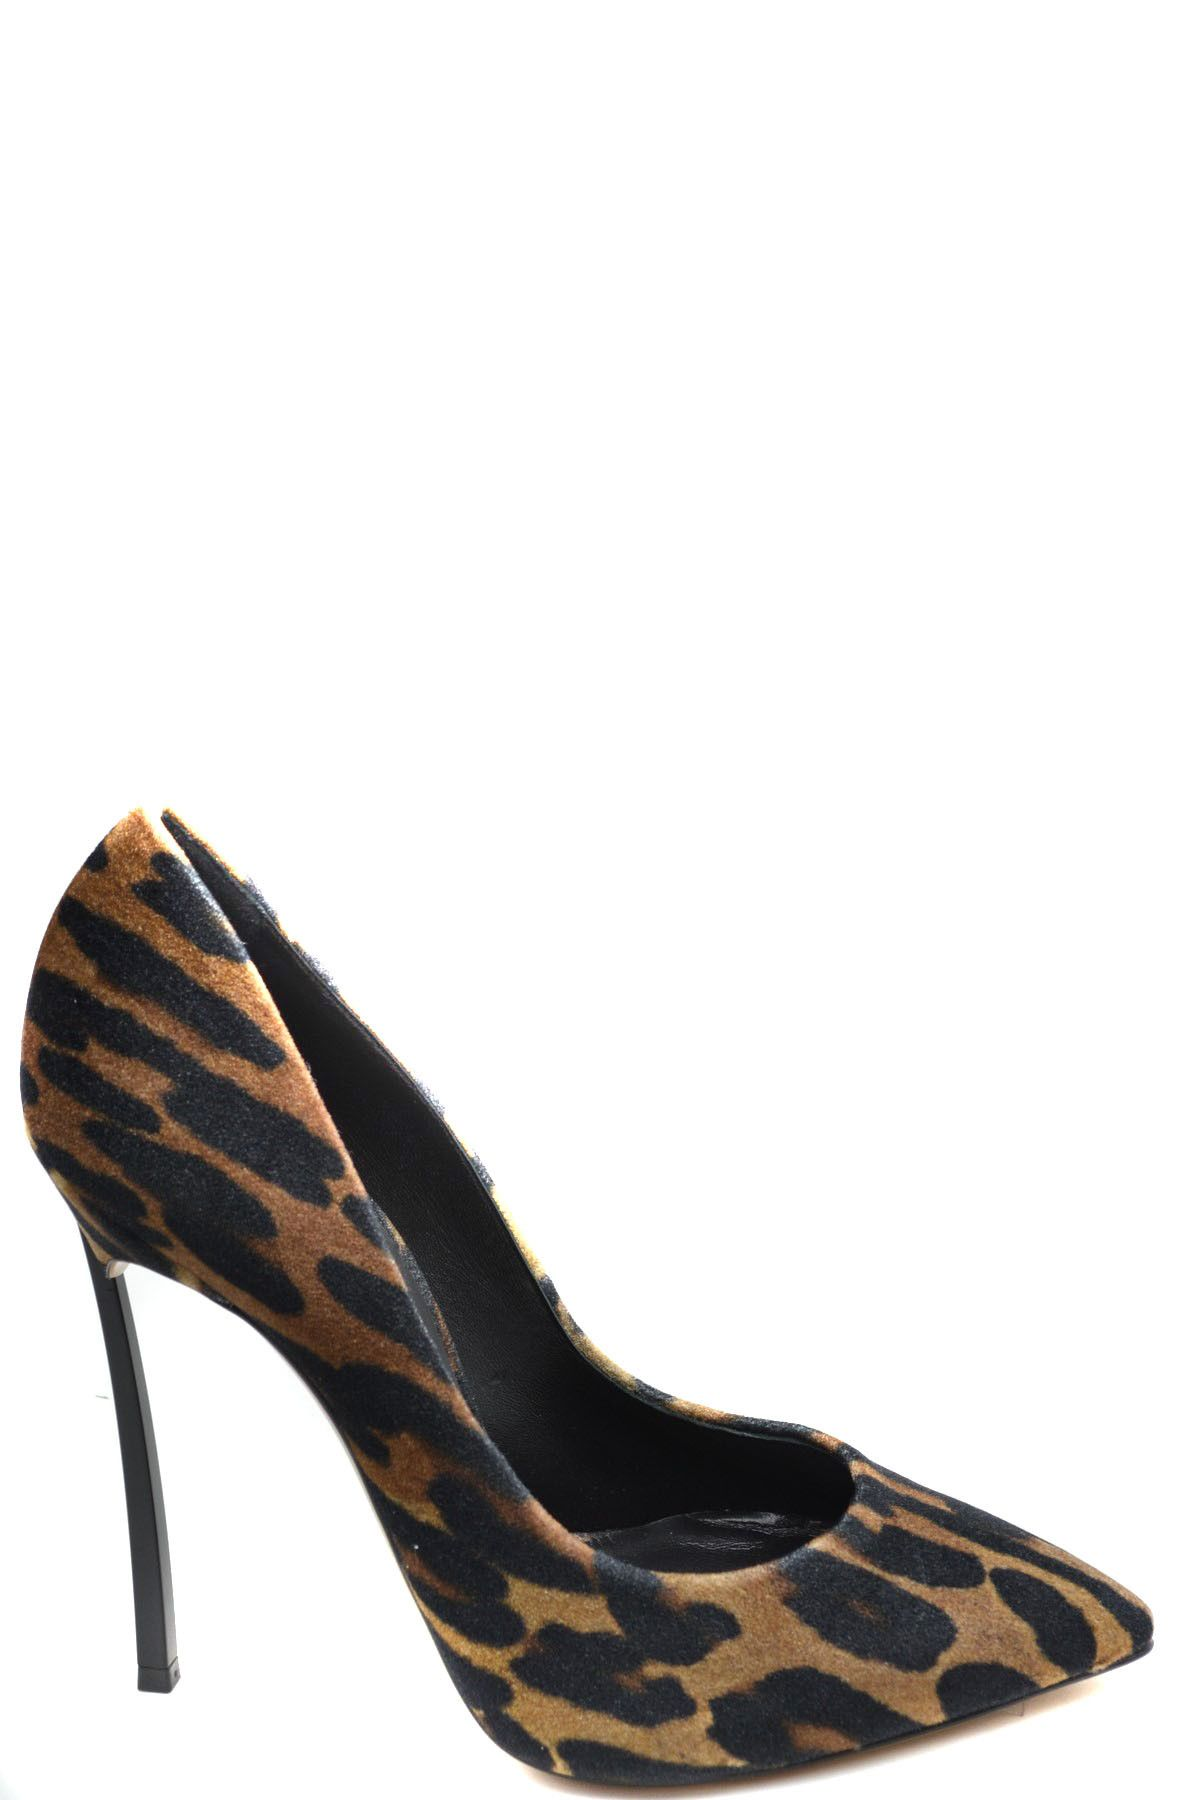 Casadei Women's Pumps Shoes In Multicolor